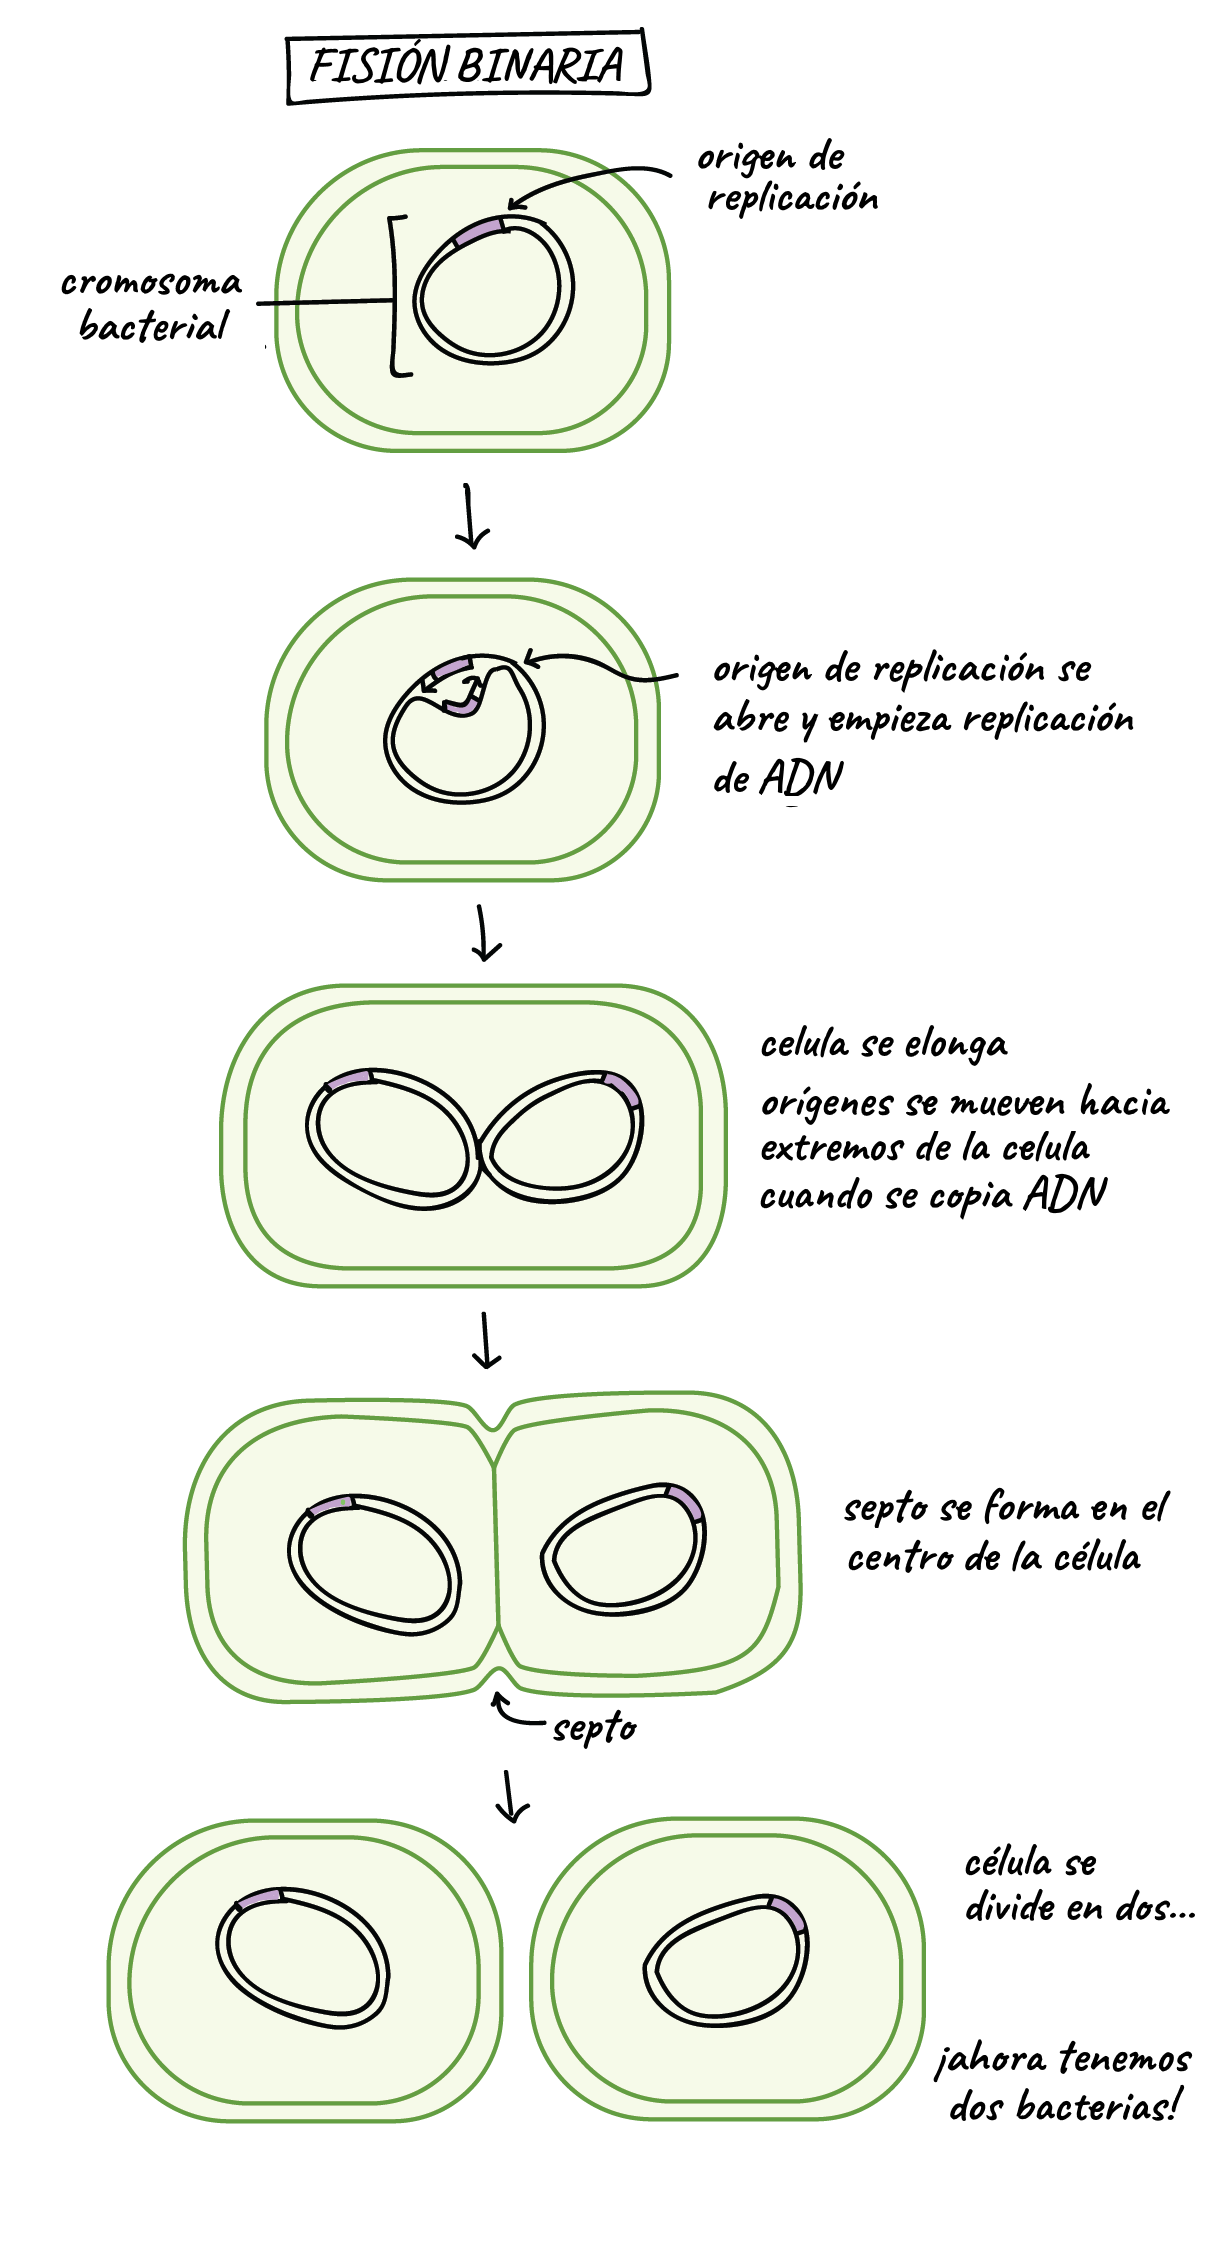 (16) Bacterial binary fission | The cell cycle and mitosis ...